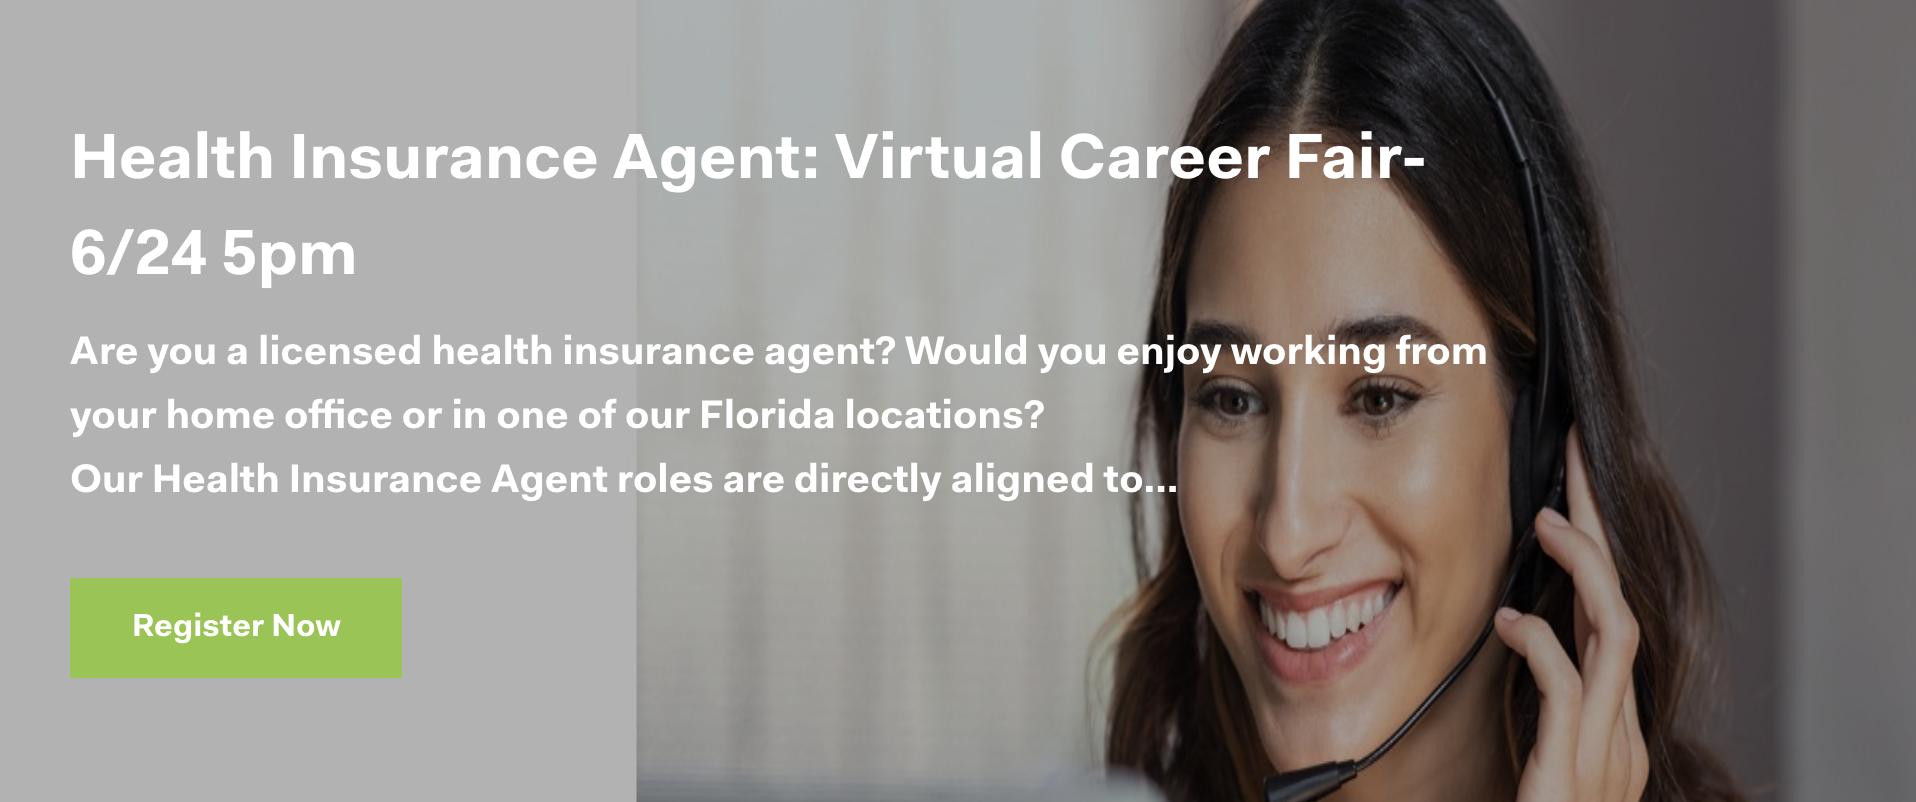 Guidewell virtual career fair screenshot